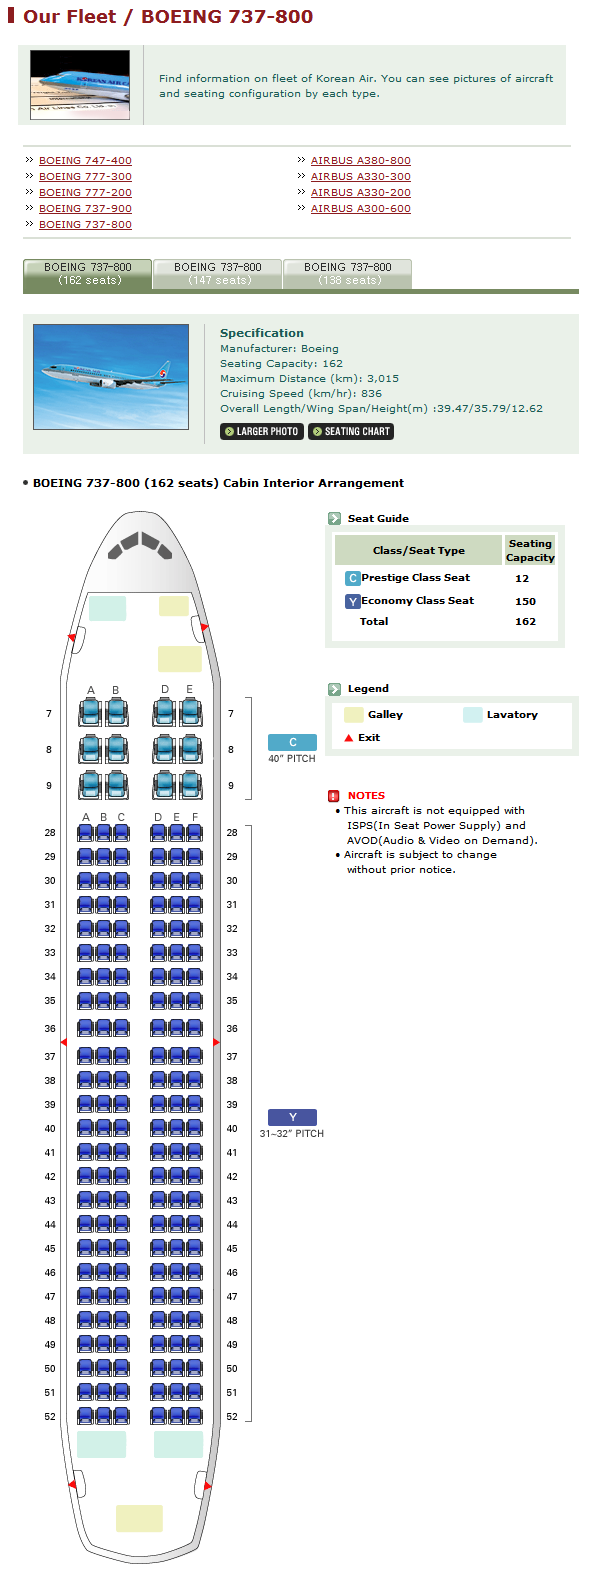 KOREAN AIR AIRLINES BOEING 737-800 AIRCRAFT SEATING CHART